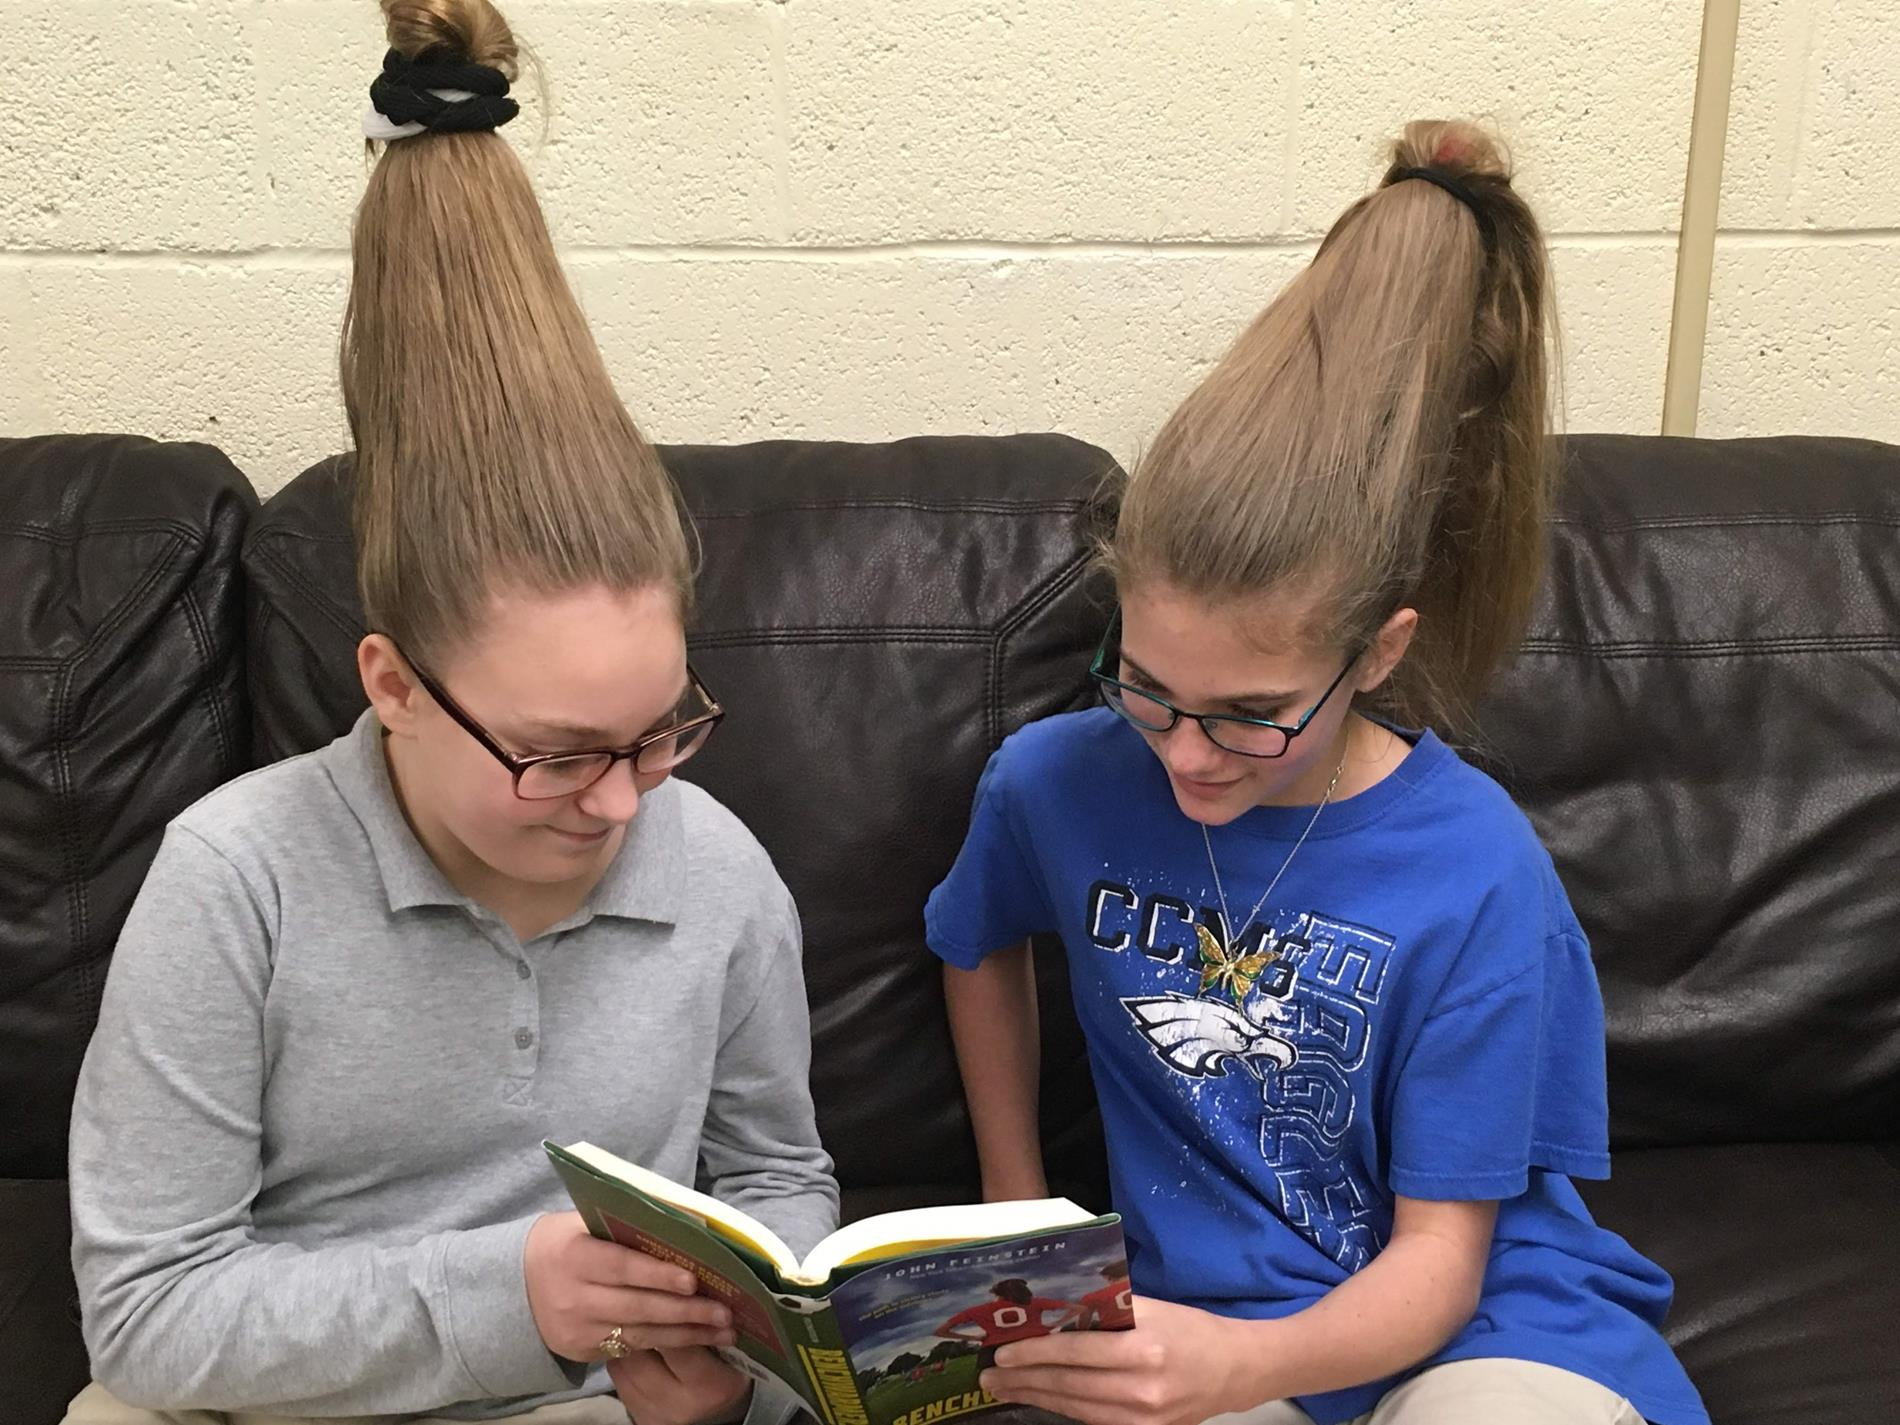 Students with hair standing up read a book together